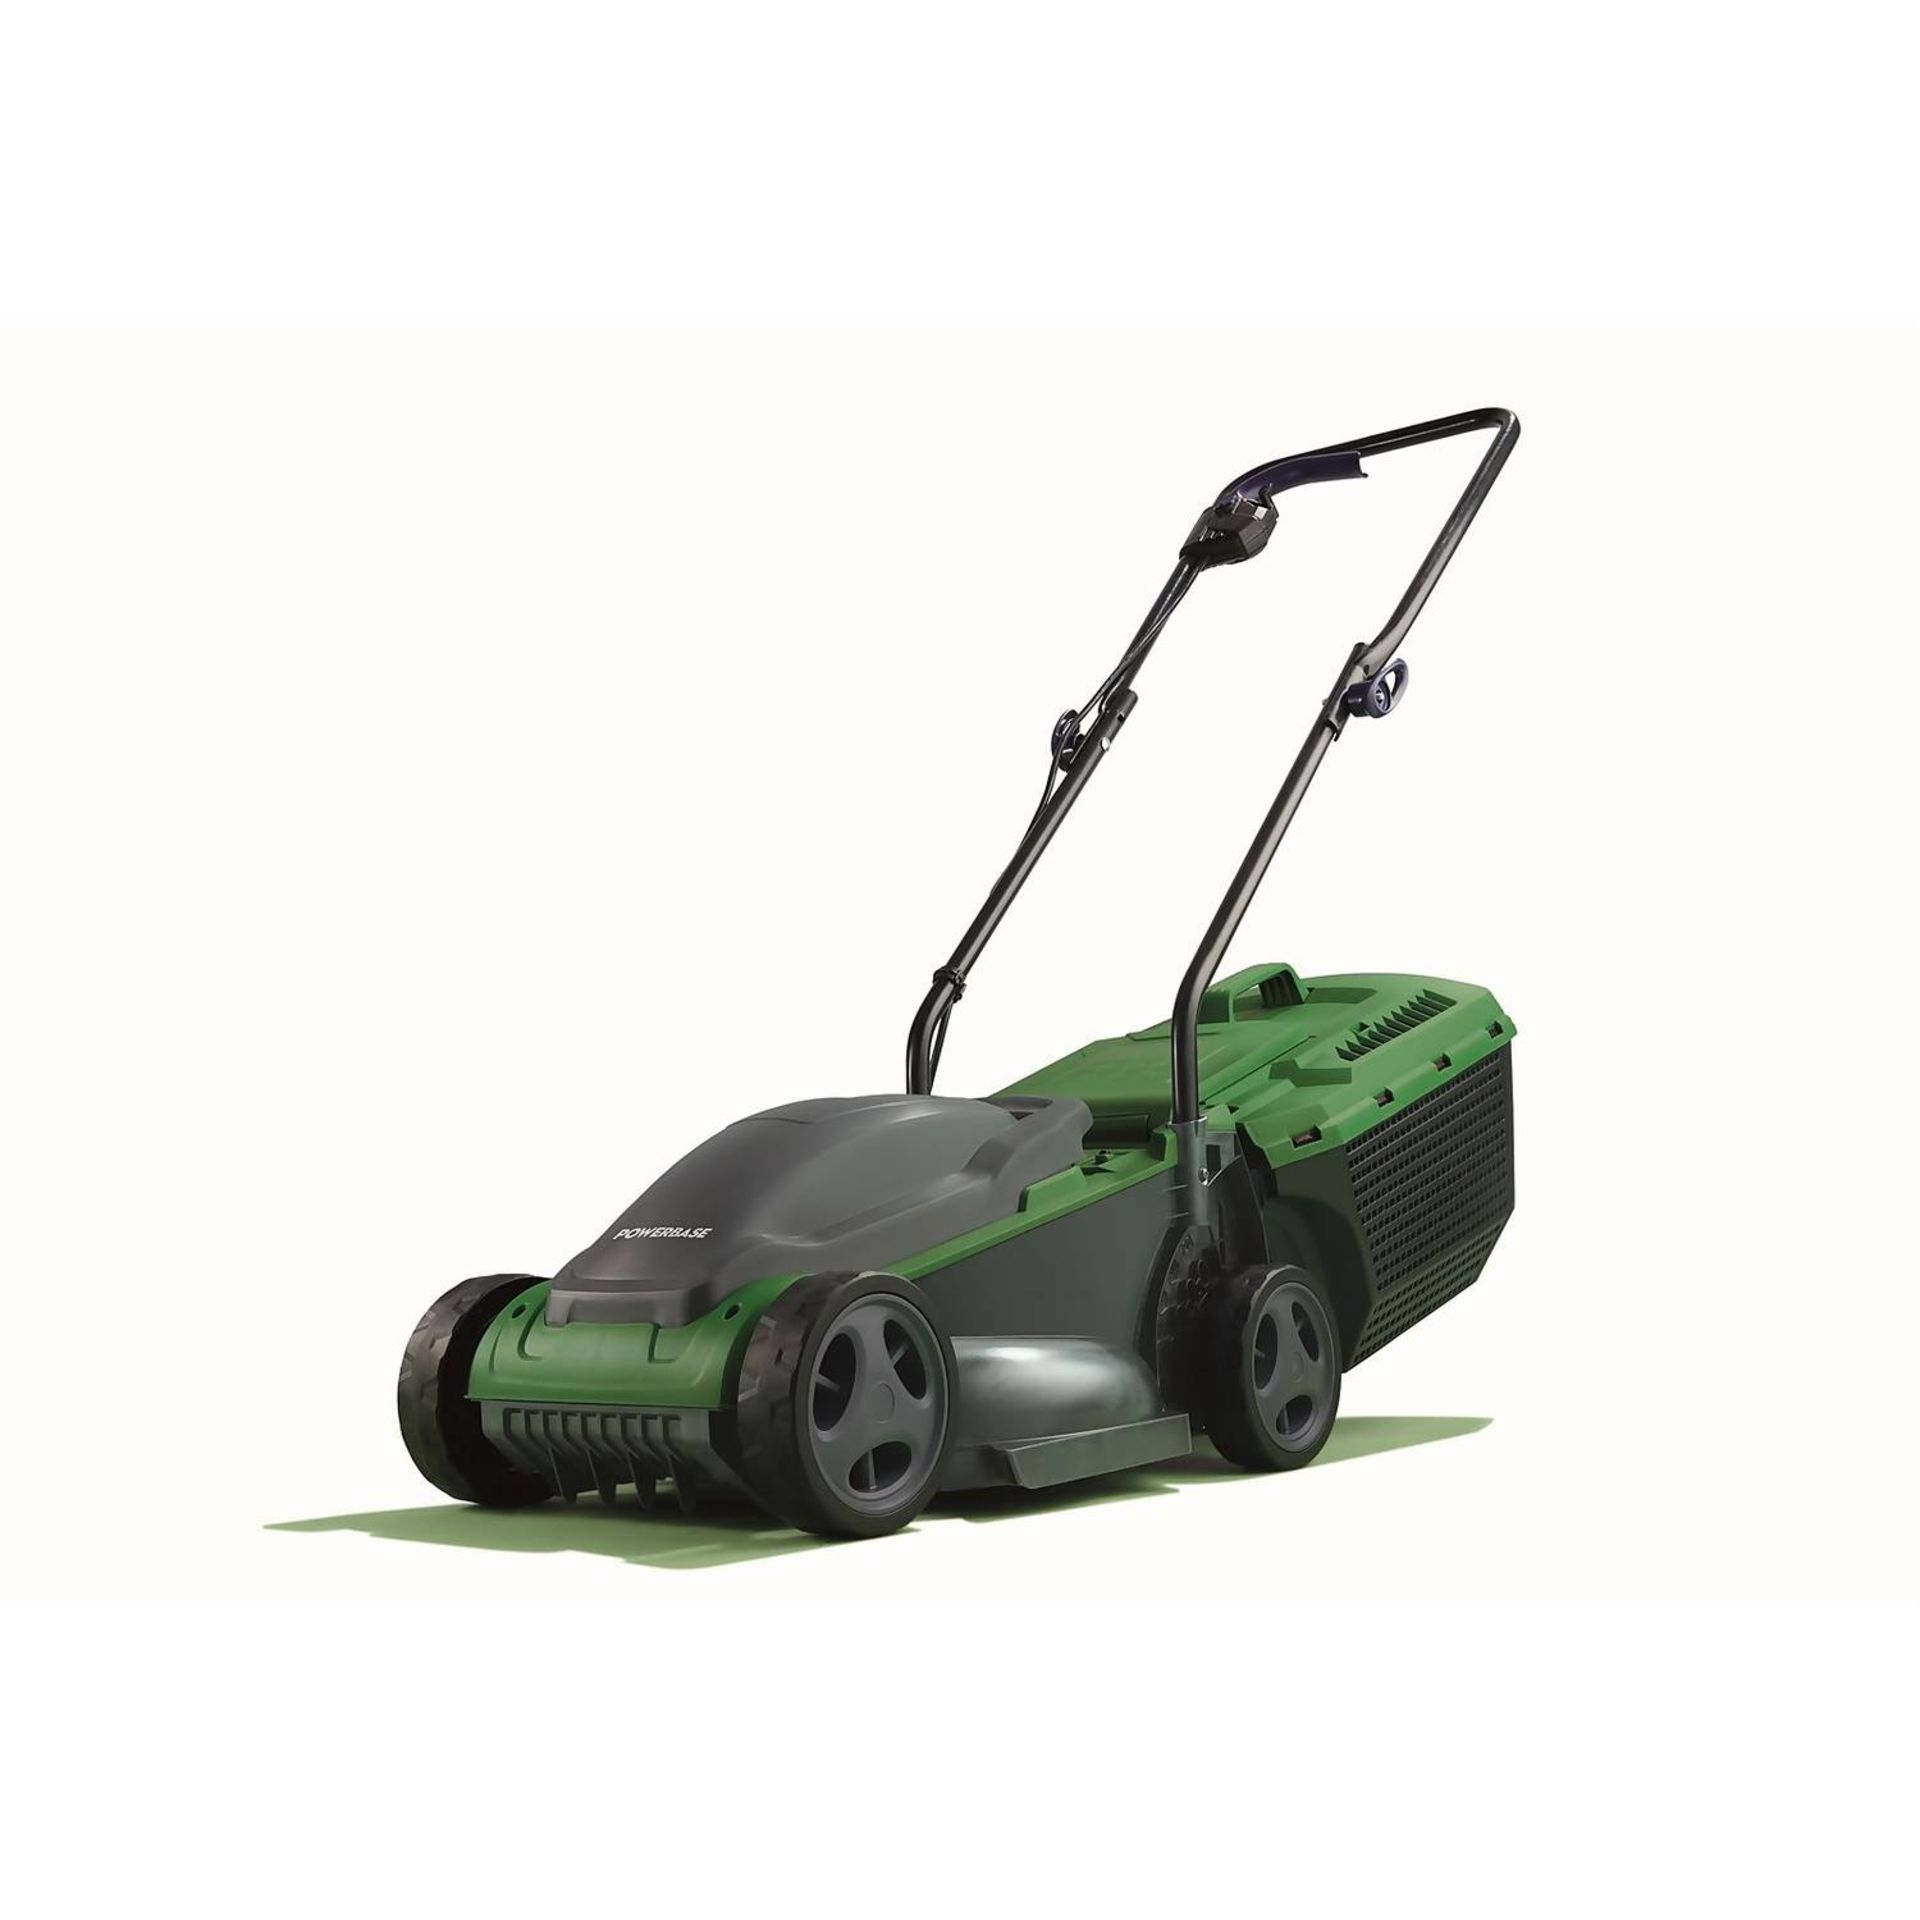 (P3) 1x Powerbase 32cm 1200W Electric Rotary Lawn Mower RRP £59. (Unit Appears Clean, Unused & As